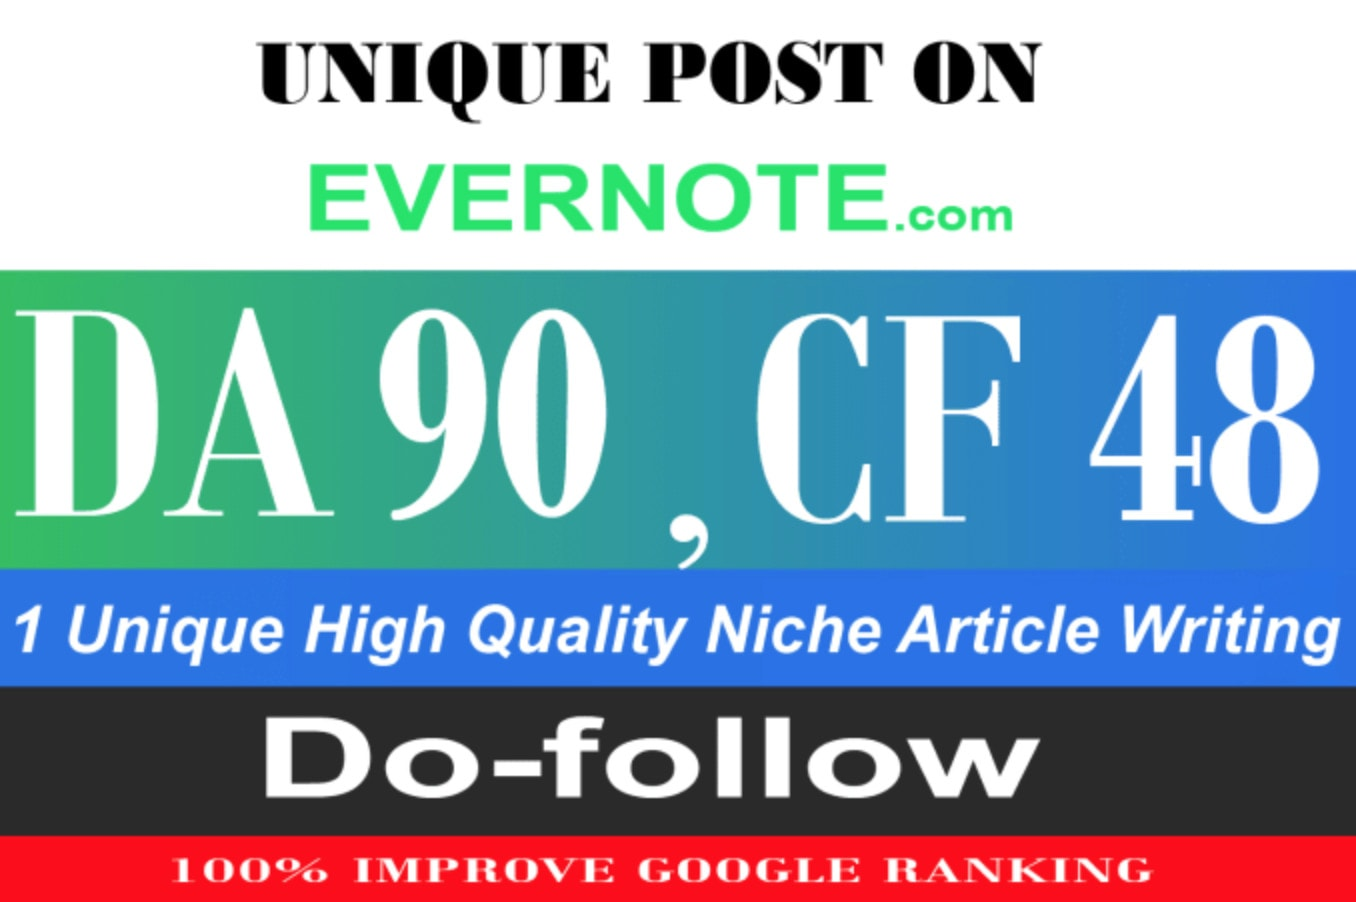 write and publish your high da90 unique evernote guest post